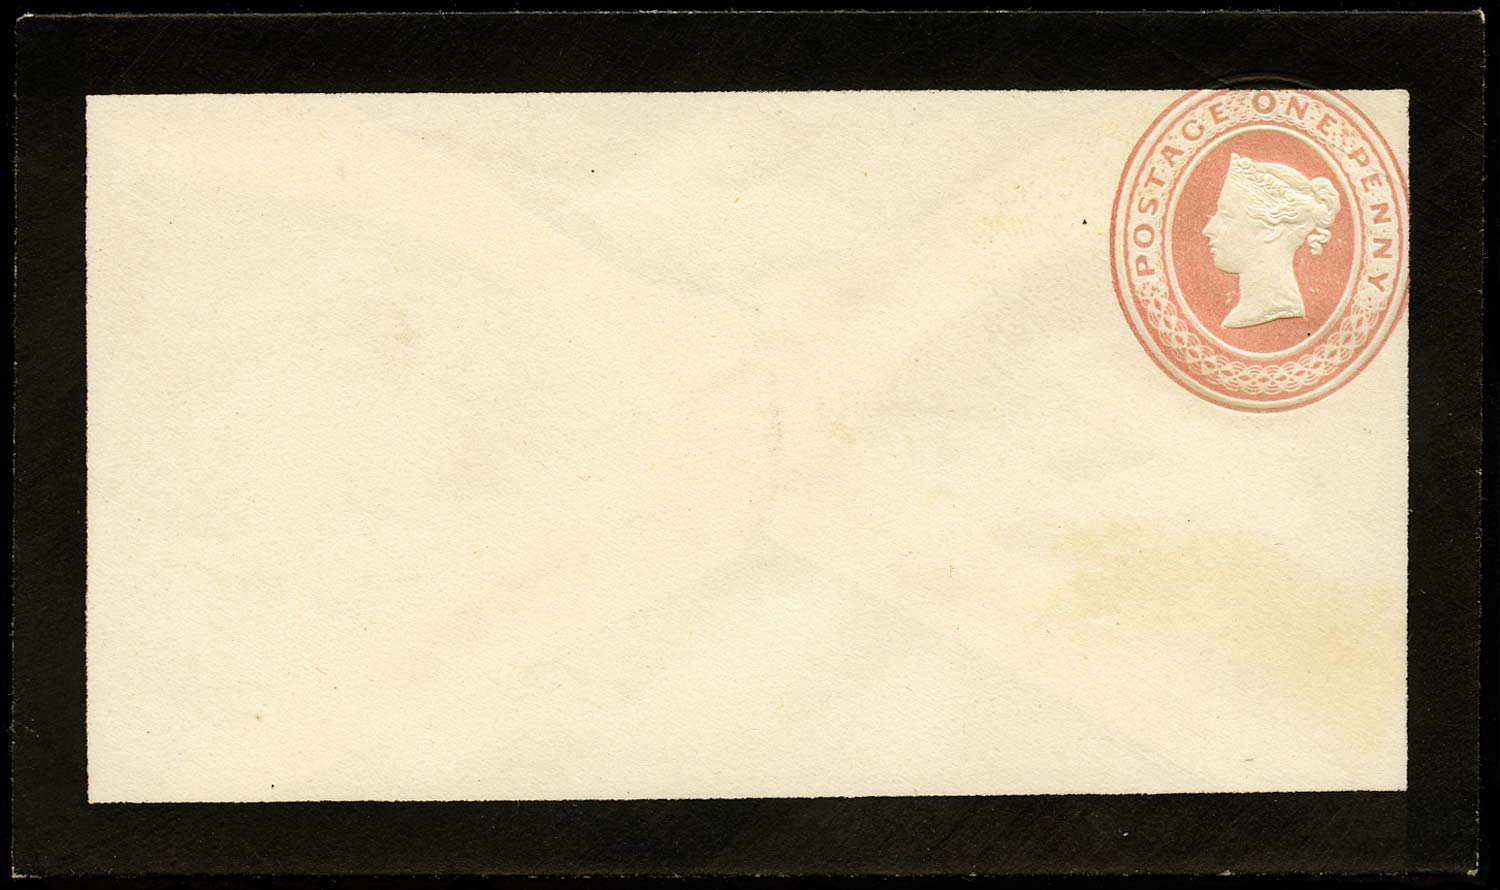 GB 1841 Postal Stationery 1d Pink Mourning envelope